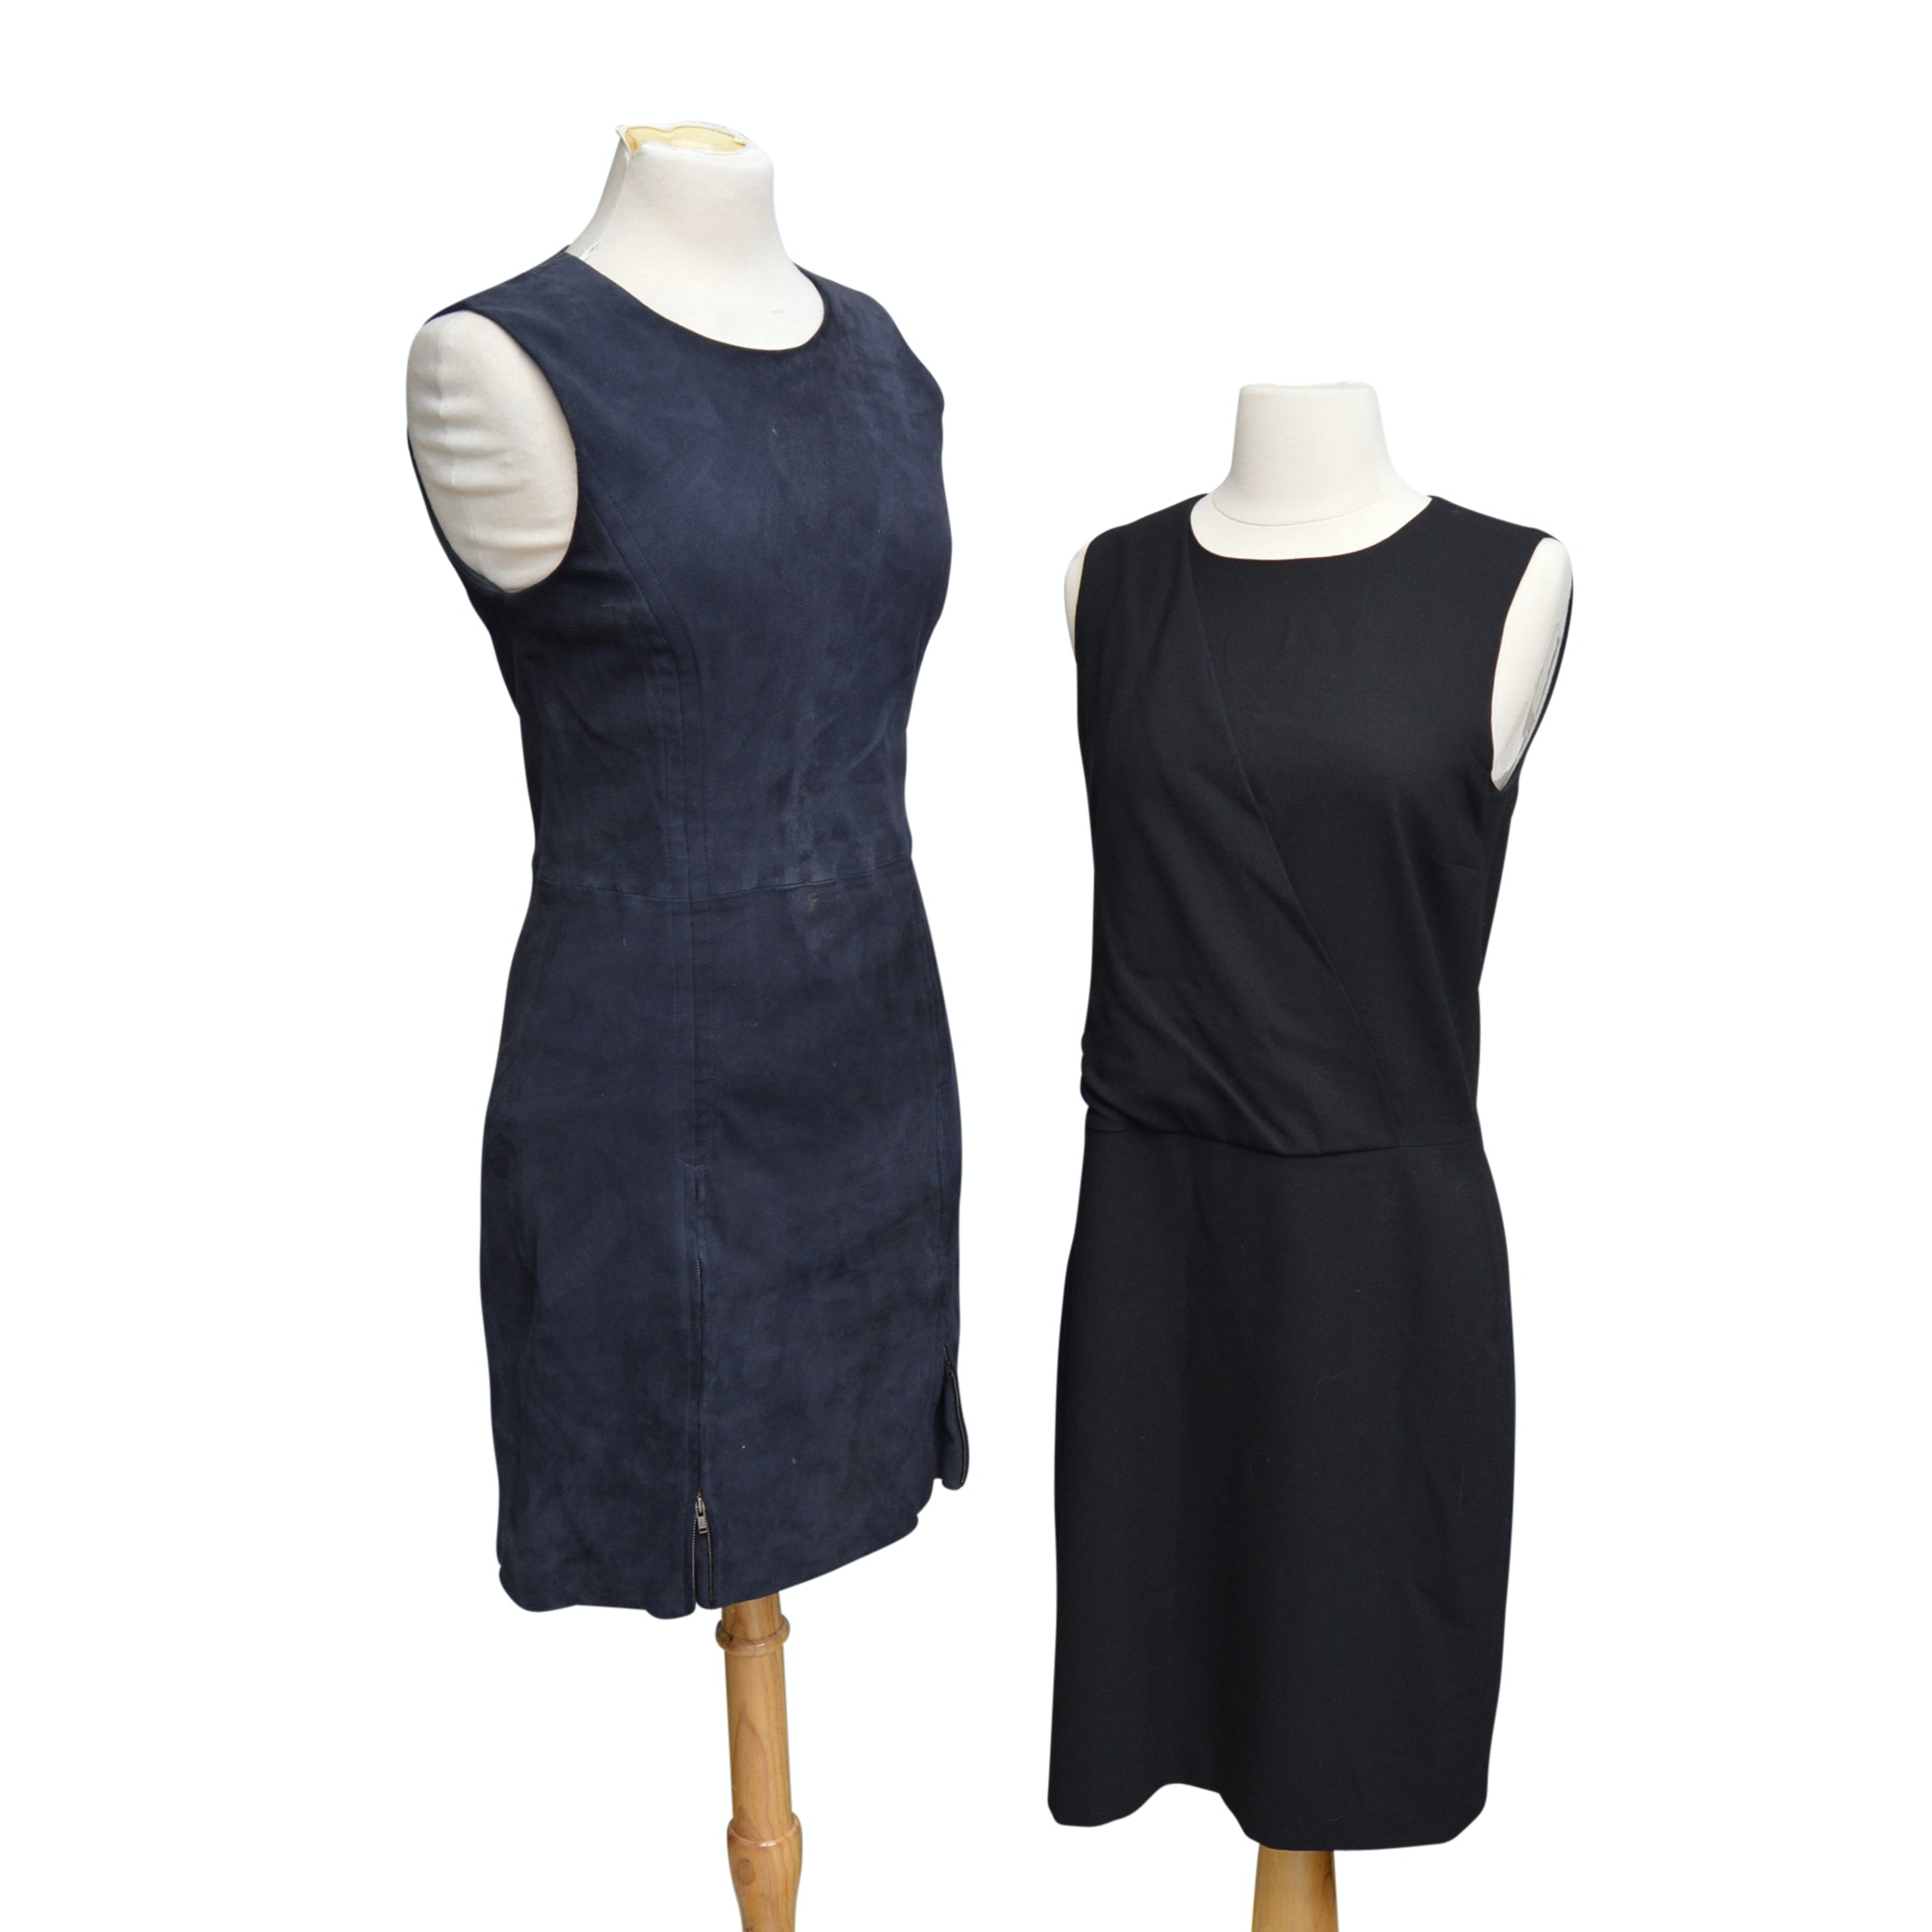 Women's Theory Black and Navy Dresses